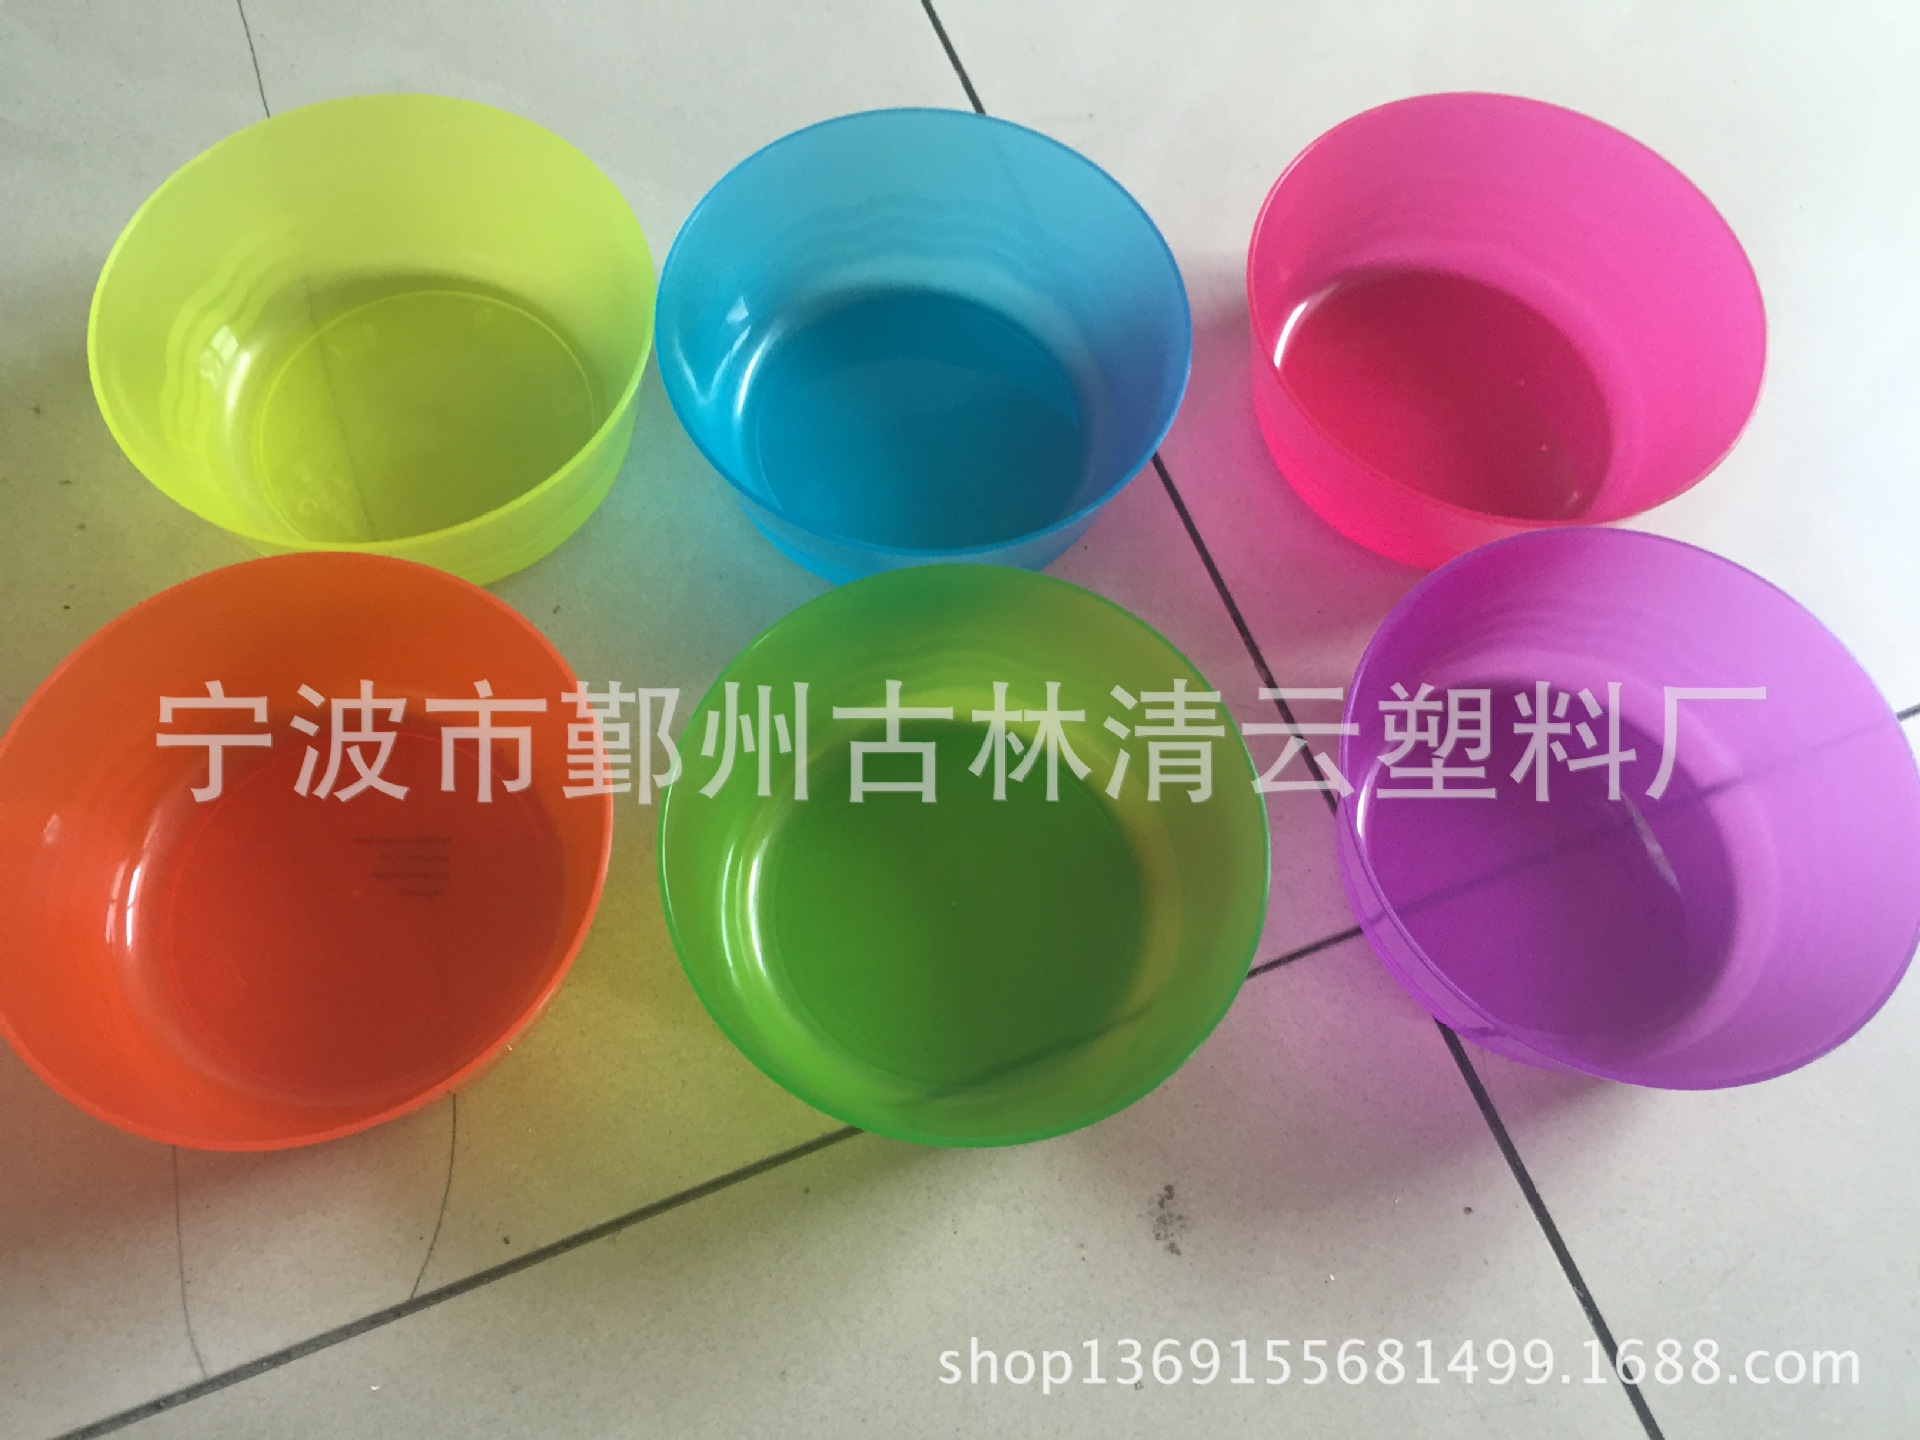 Plastic dish bowls, cups and saucers, children's dishes, children's dishes, daily necessities, 6PS